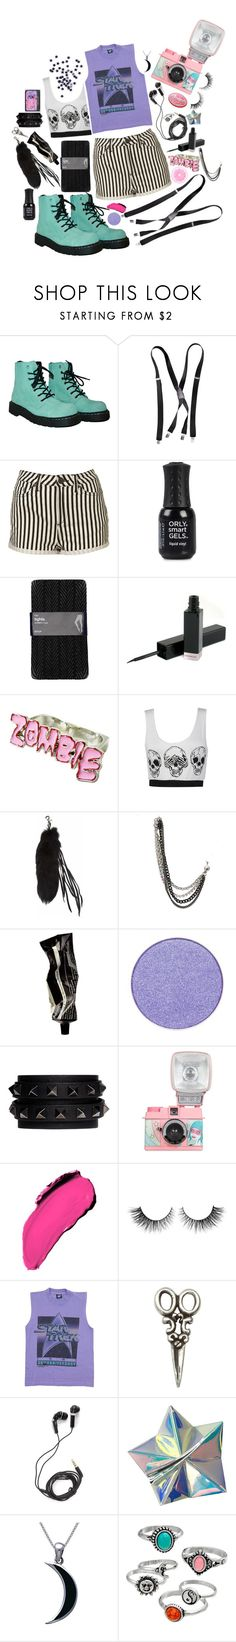 """Alien She"" by branja ❤ liked on Polyvore featuring T.U.K., H&M, Topshop, ORLY, Gap, Givenchy, Victorious 22, Hot Topic, Aesop and Valentino"